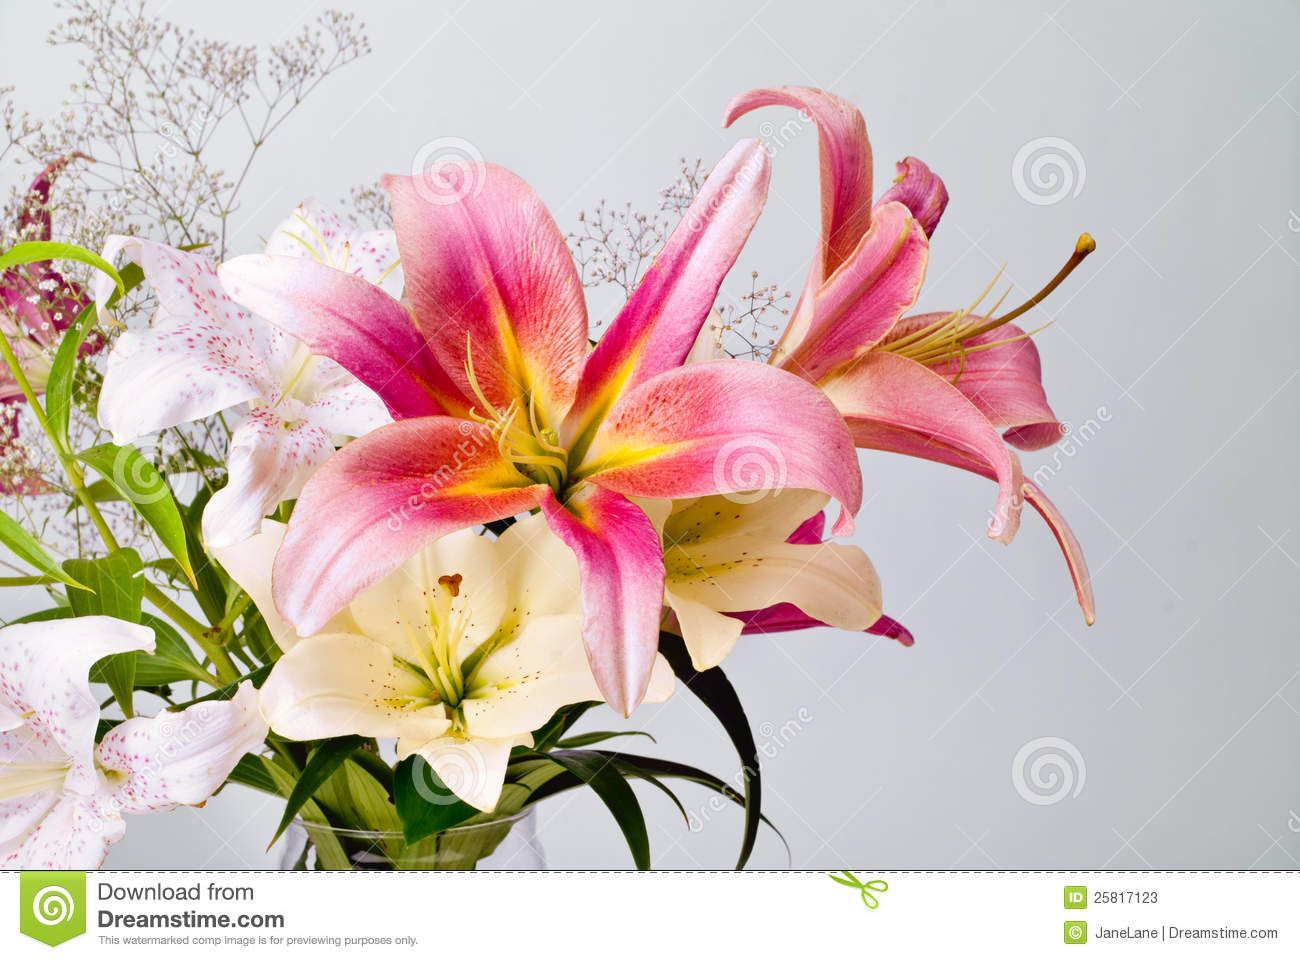 Pink lilies flowers stock flower images pinterest lilies pink lilies flowers izmirmasajfo Image collections